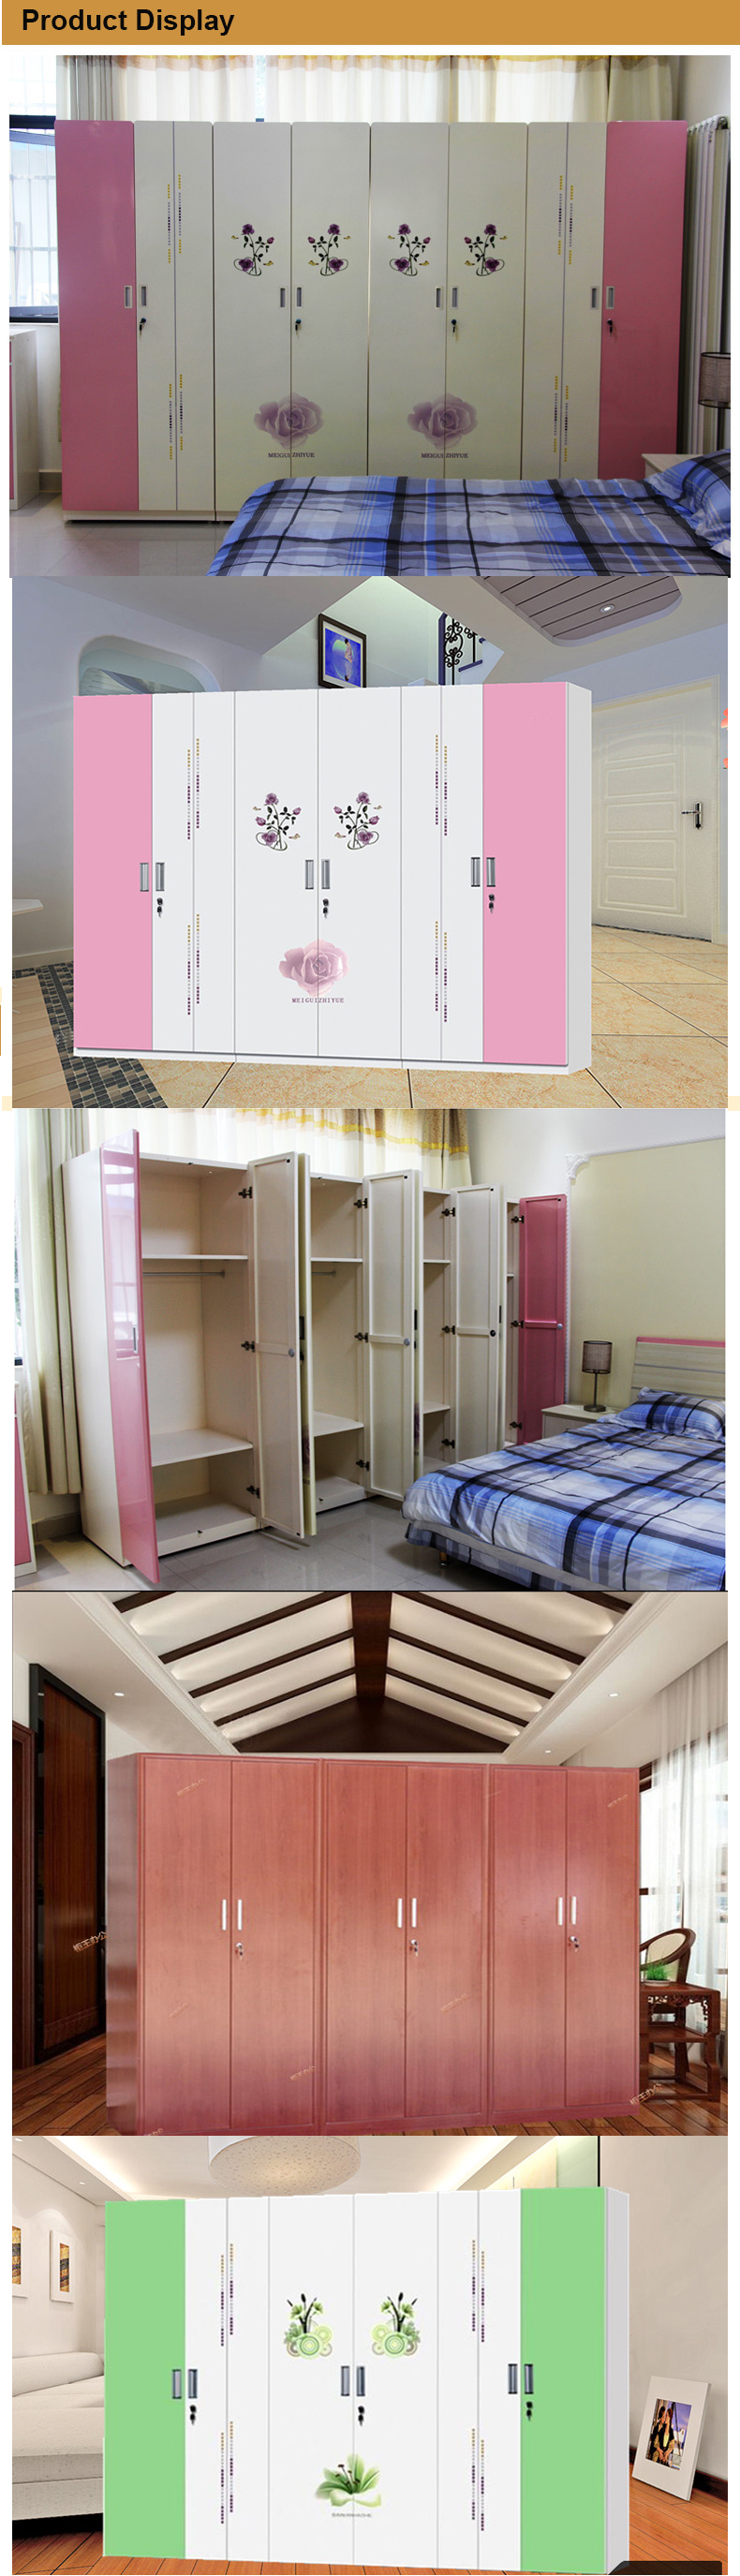 Locker Bedroom Furniture Storage Locker Wall Cabinets For Dining Room Wall Mounted Small